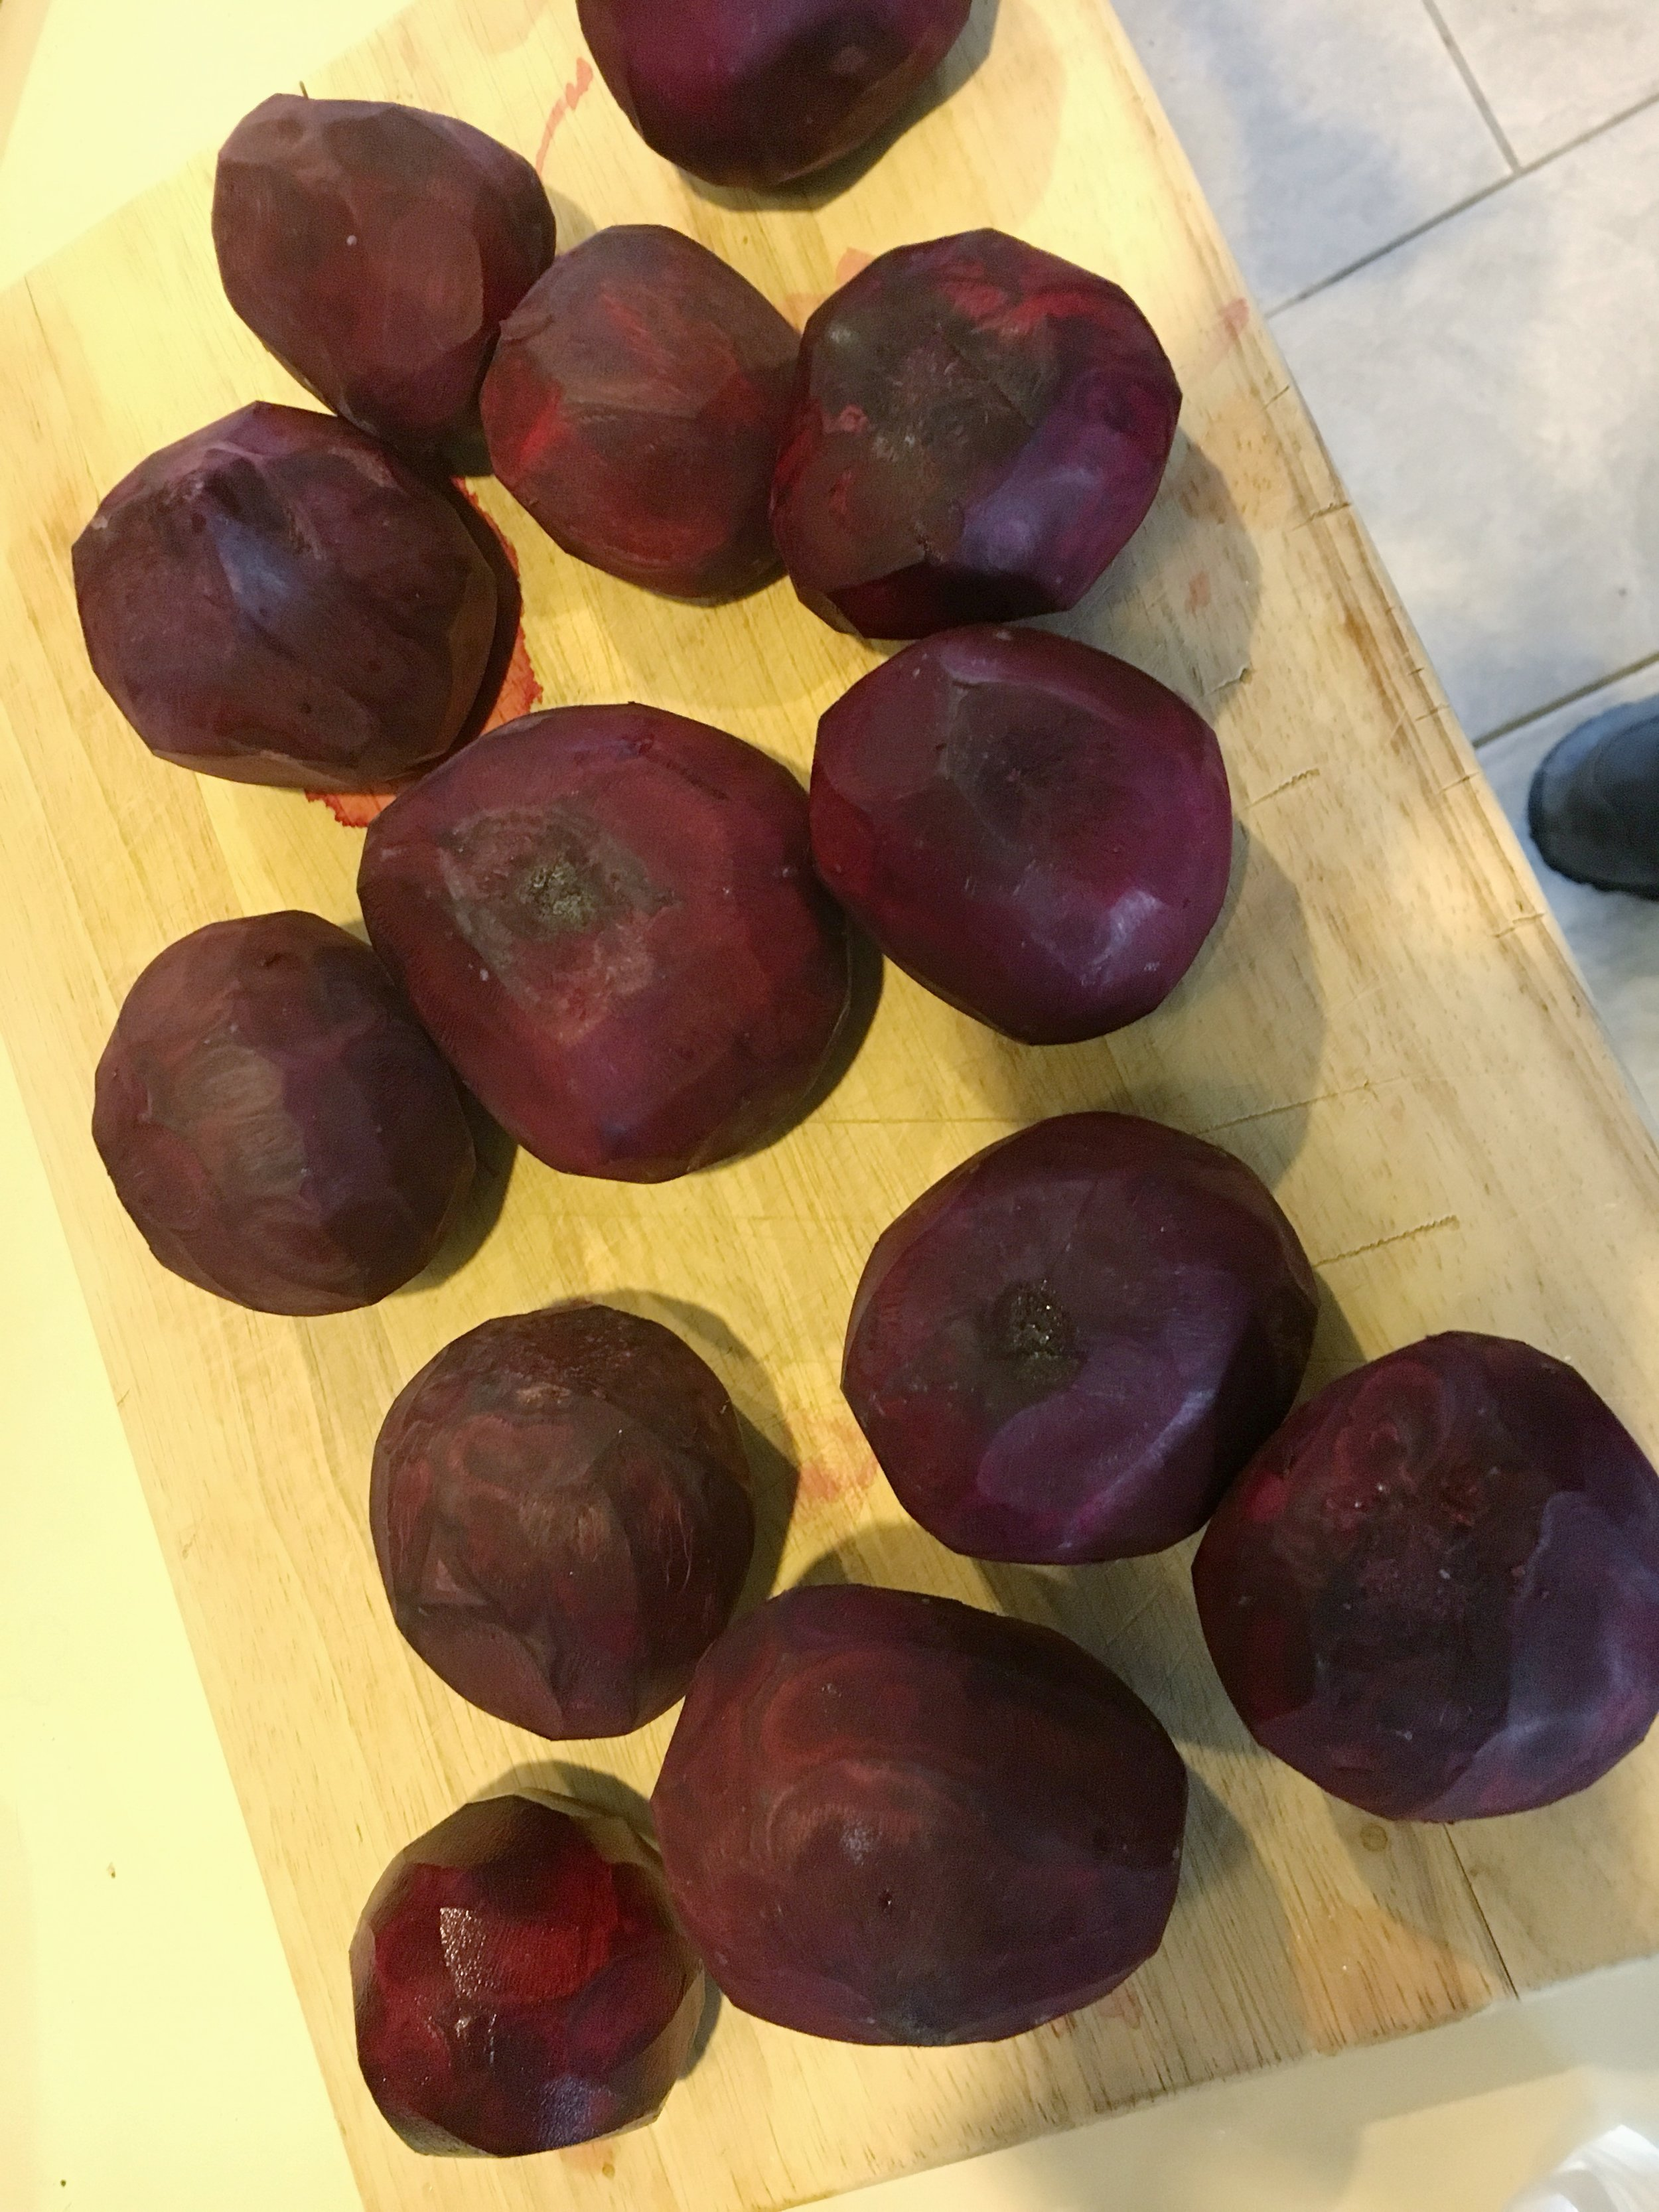 Peeled beets can get messy, but at least they don't seem to stain.